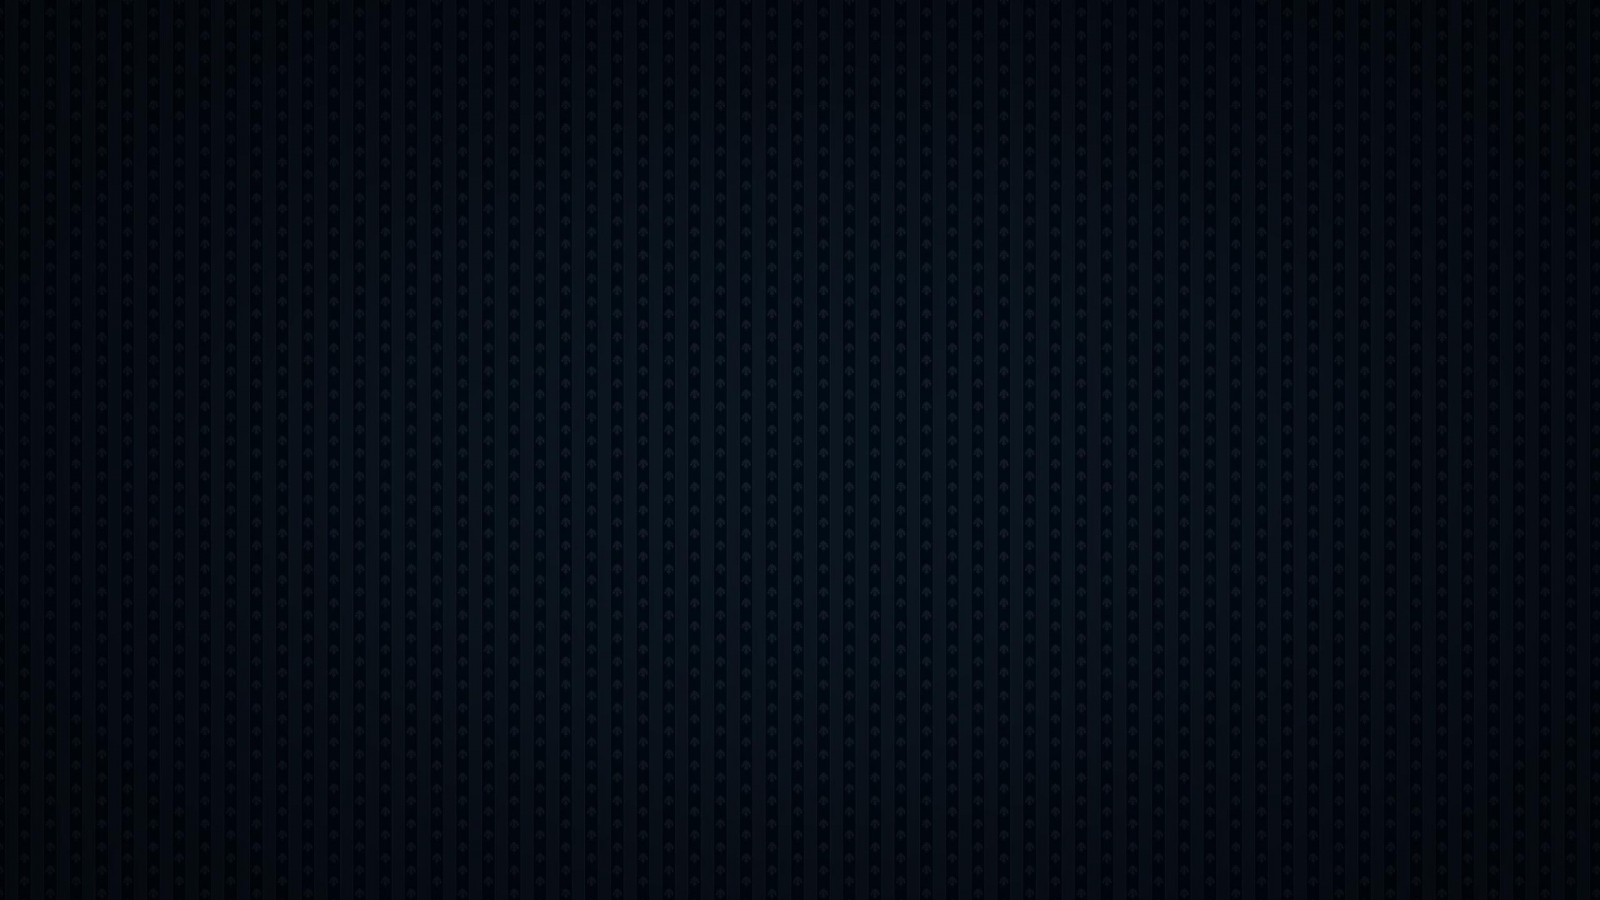 Dark Blue Texture Hd Wallpaper Wallpaper List 1600x900